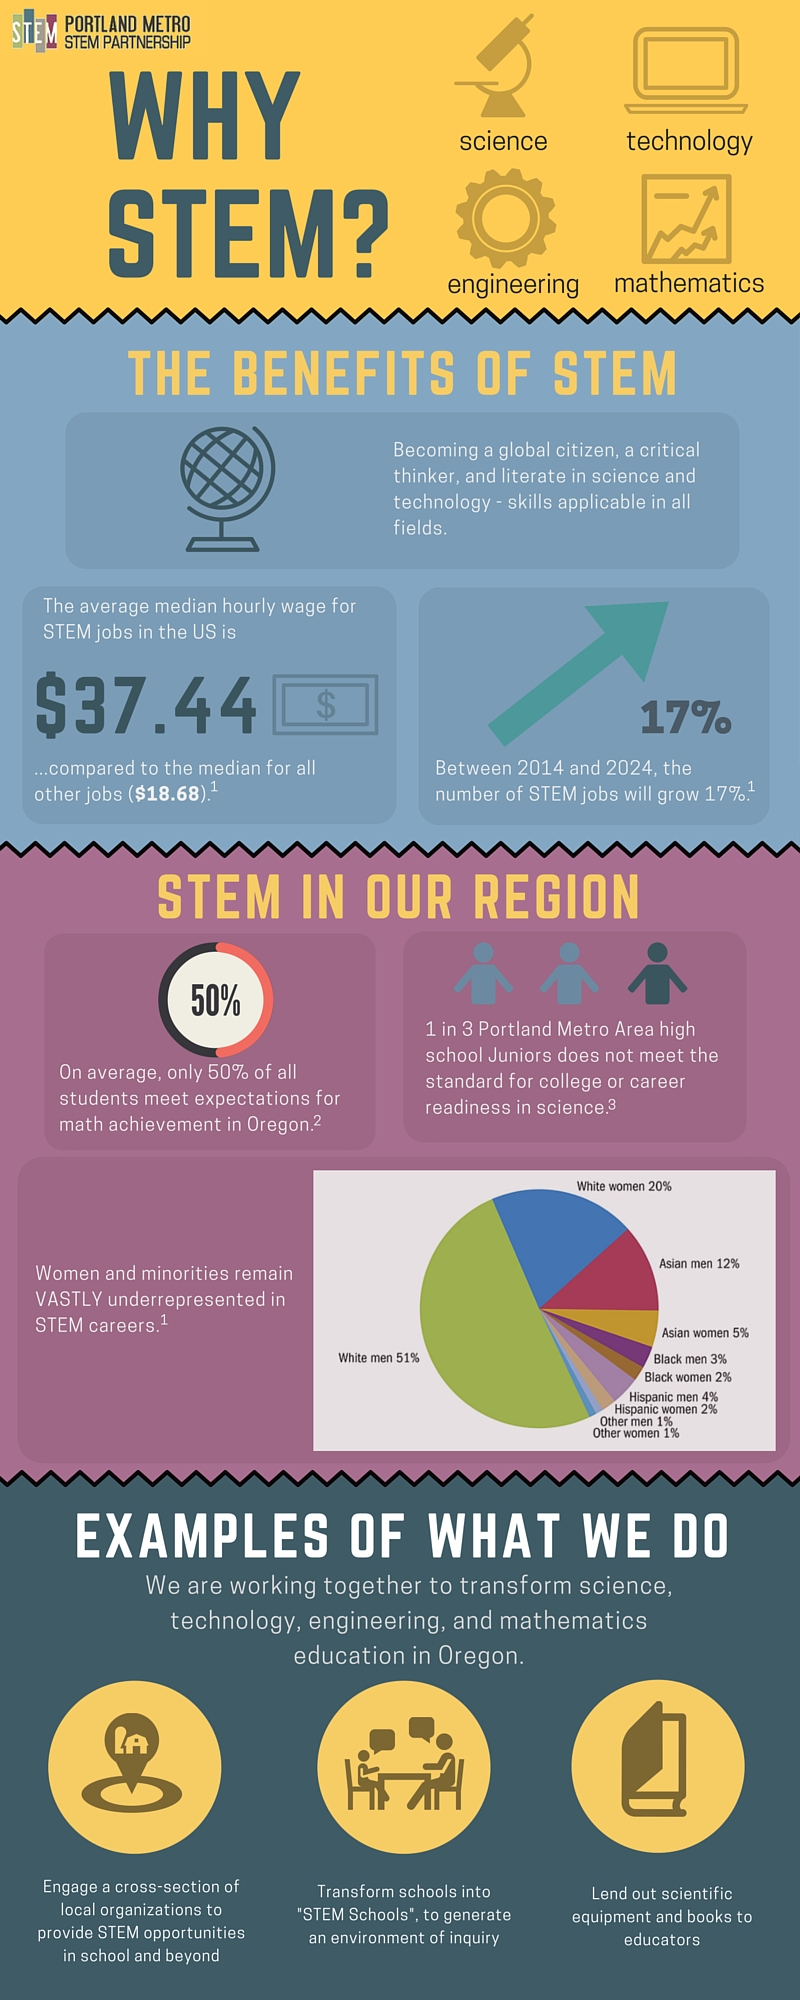 Why-STEM-Infographic-FINAL.jpg